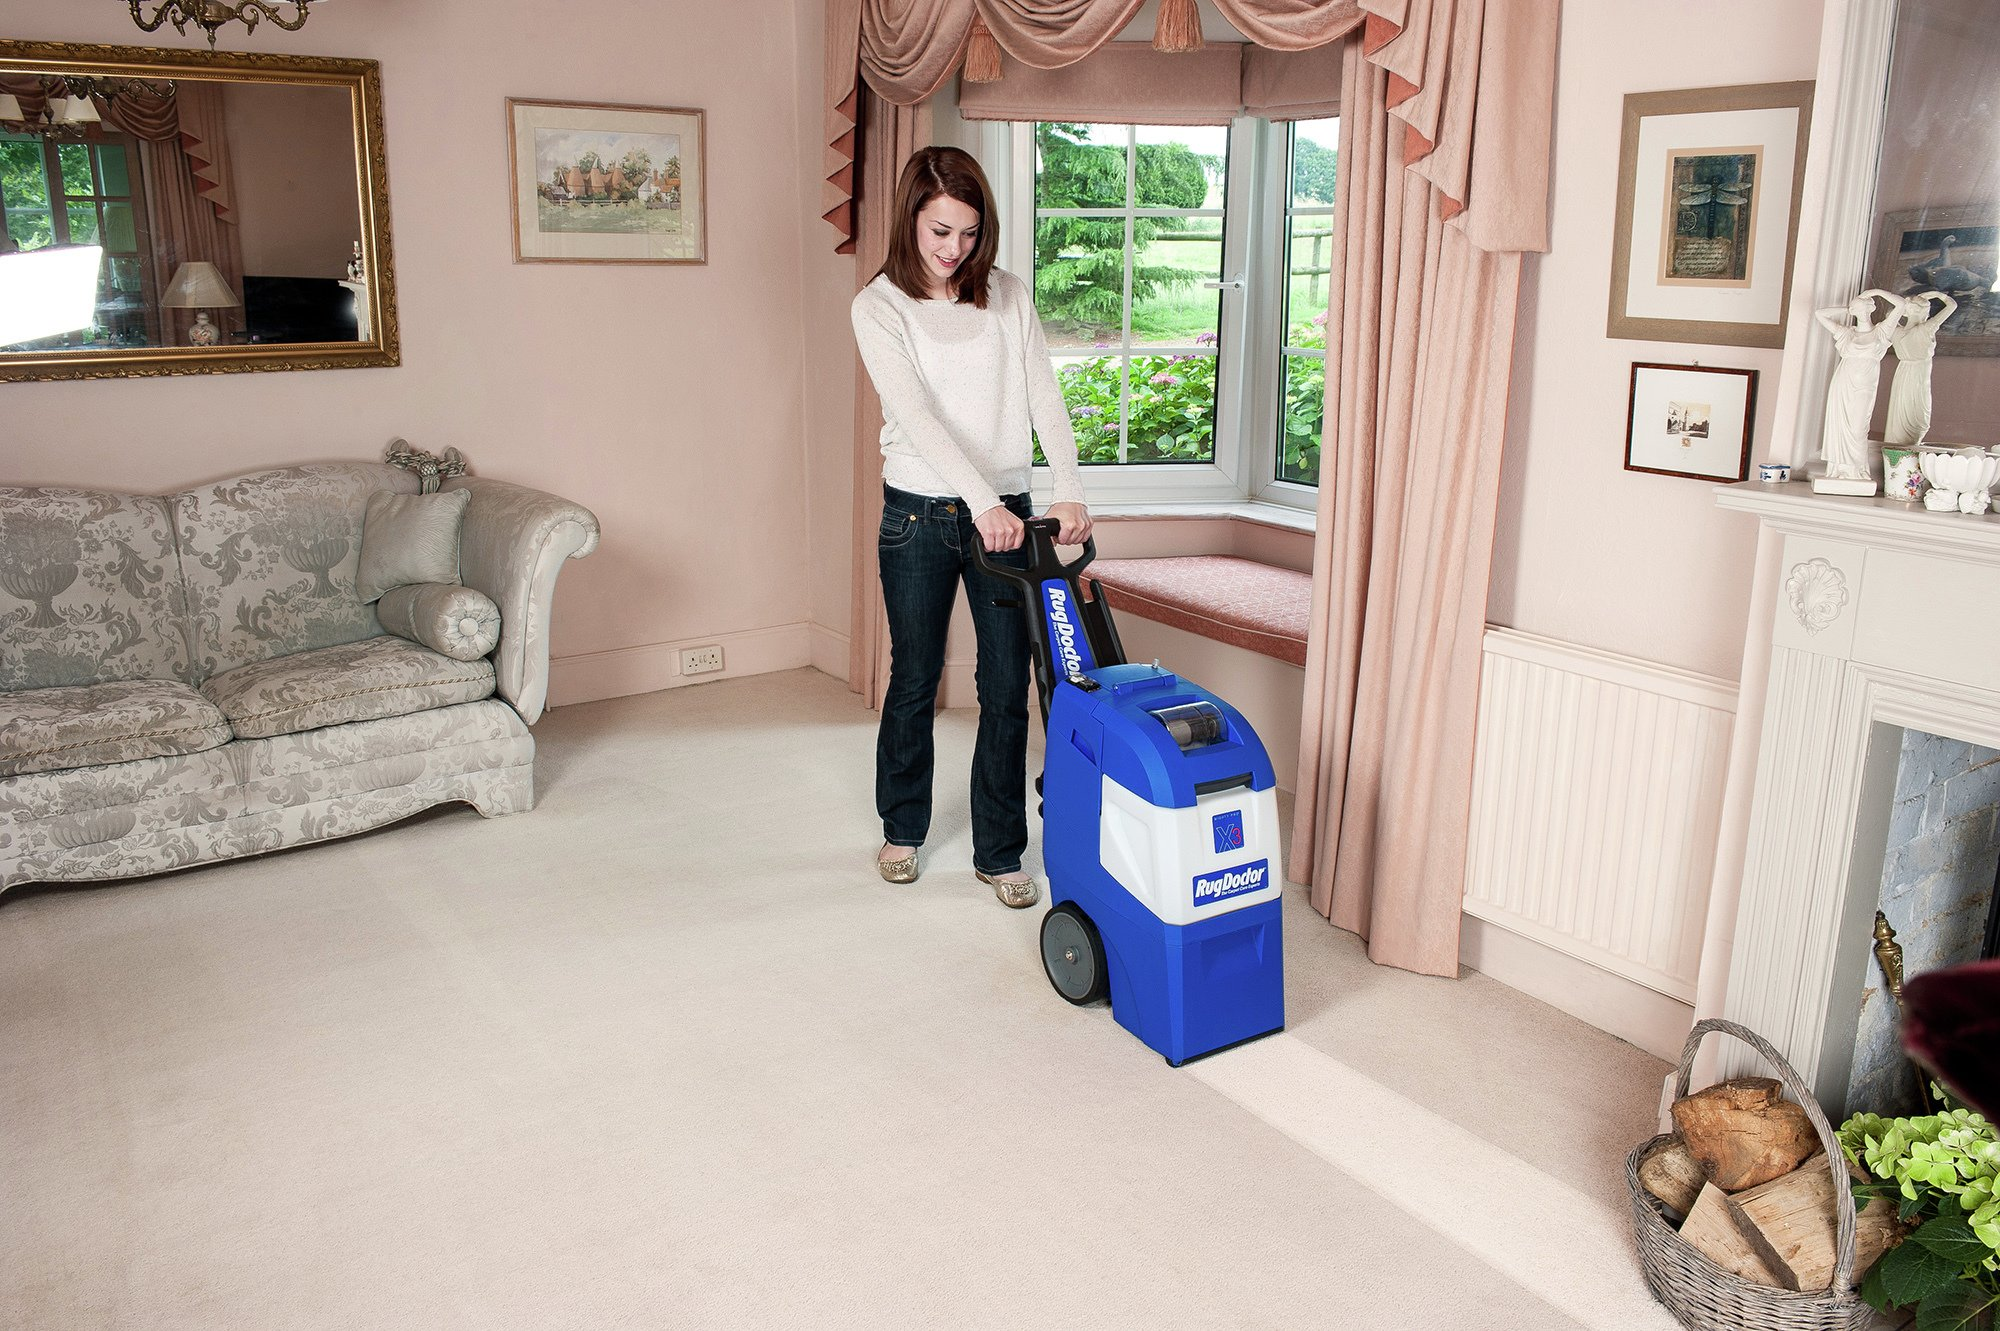 Buy Rug Doctor Mighty Pro X3 Carpet Washer Carpet Cleaners Argos